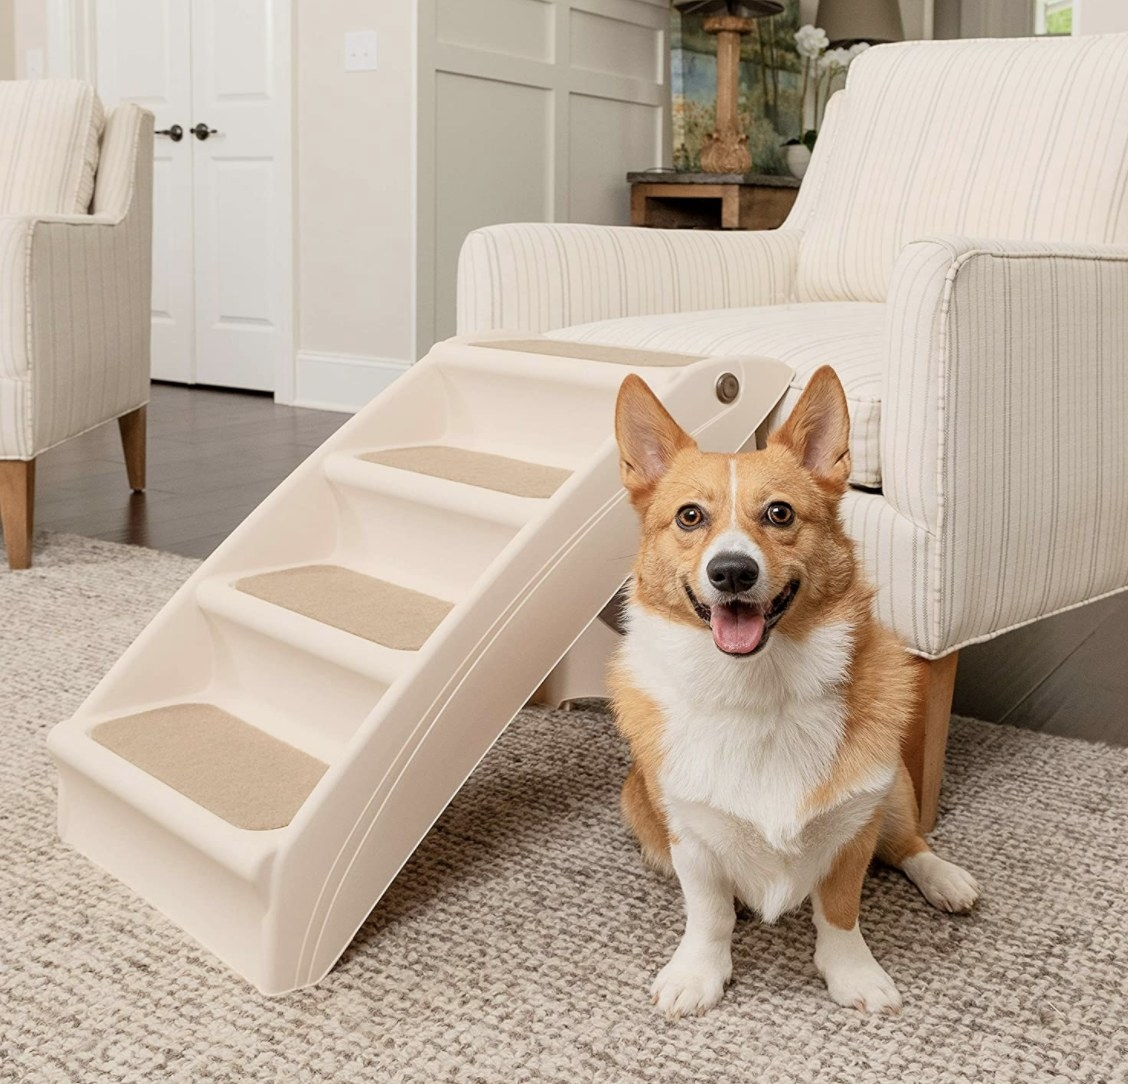 Product photo showing a corgi sitting next to pet steps